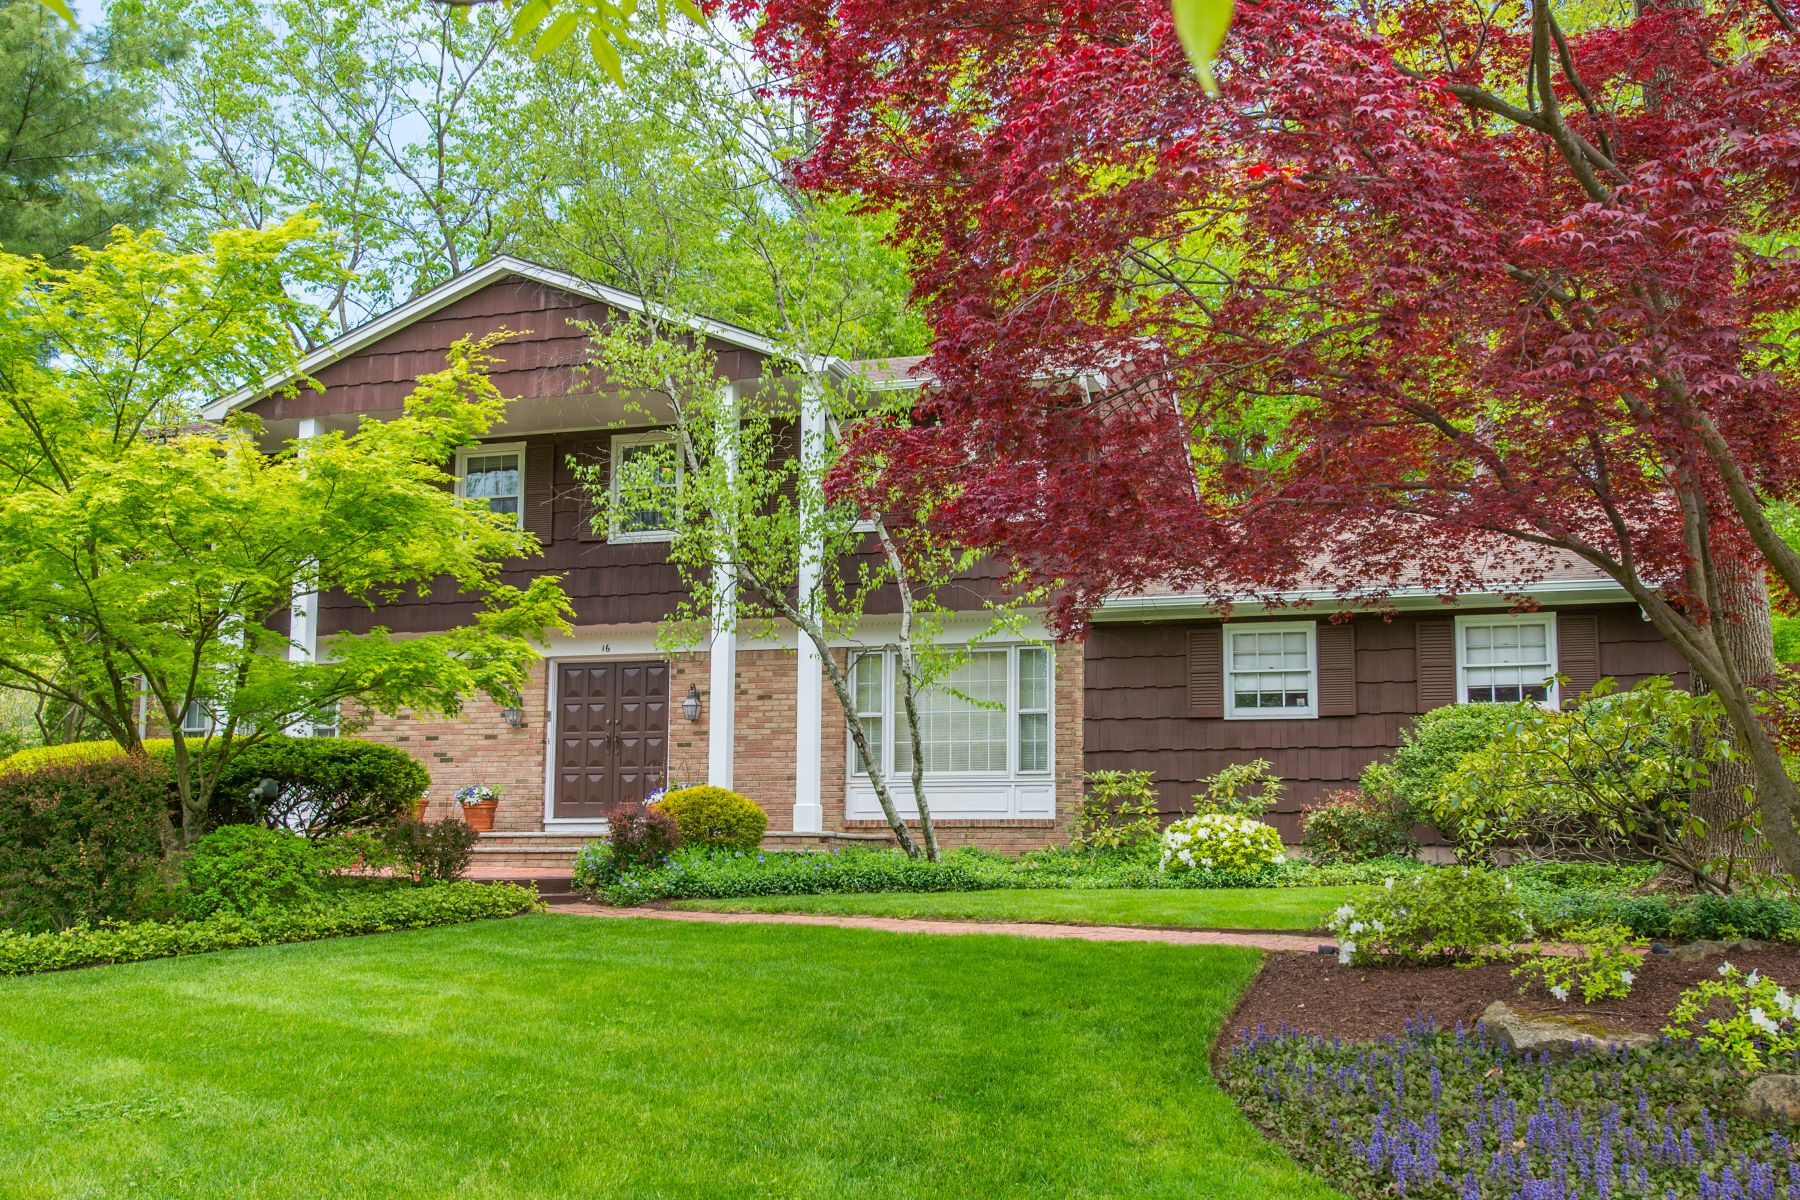 Single Family Homes for Sale at 16 Breton Drive Pine Brook 16 Breton Drive Pine Brook, New Jersey 07058 United States